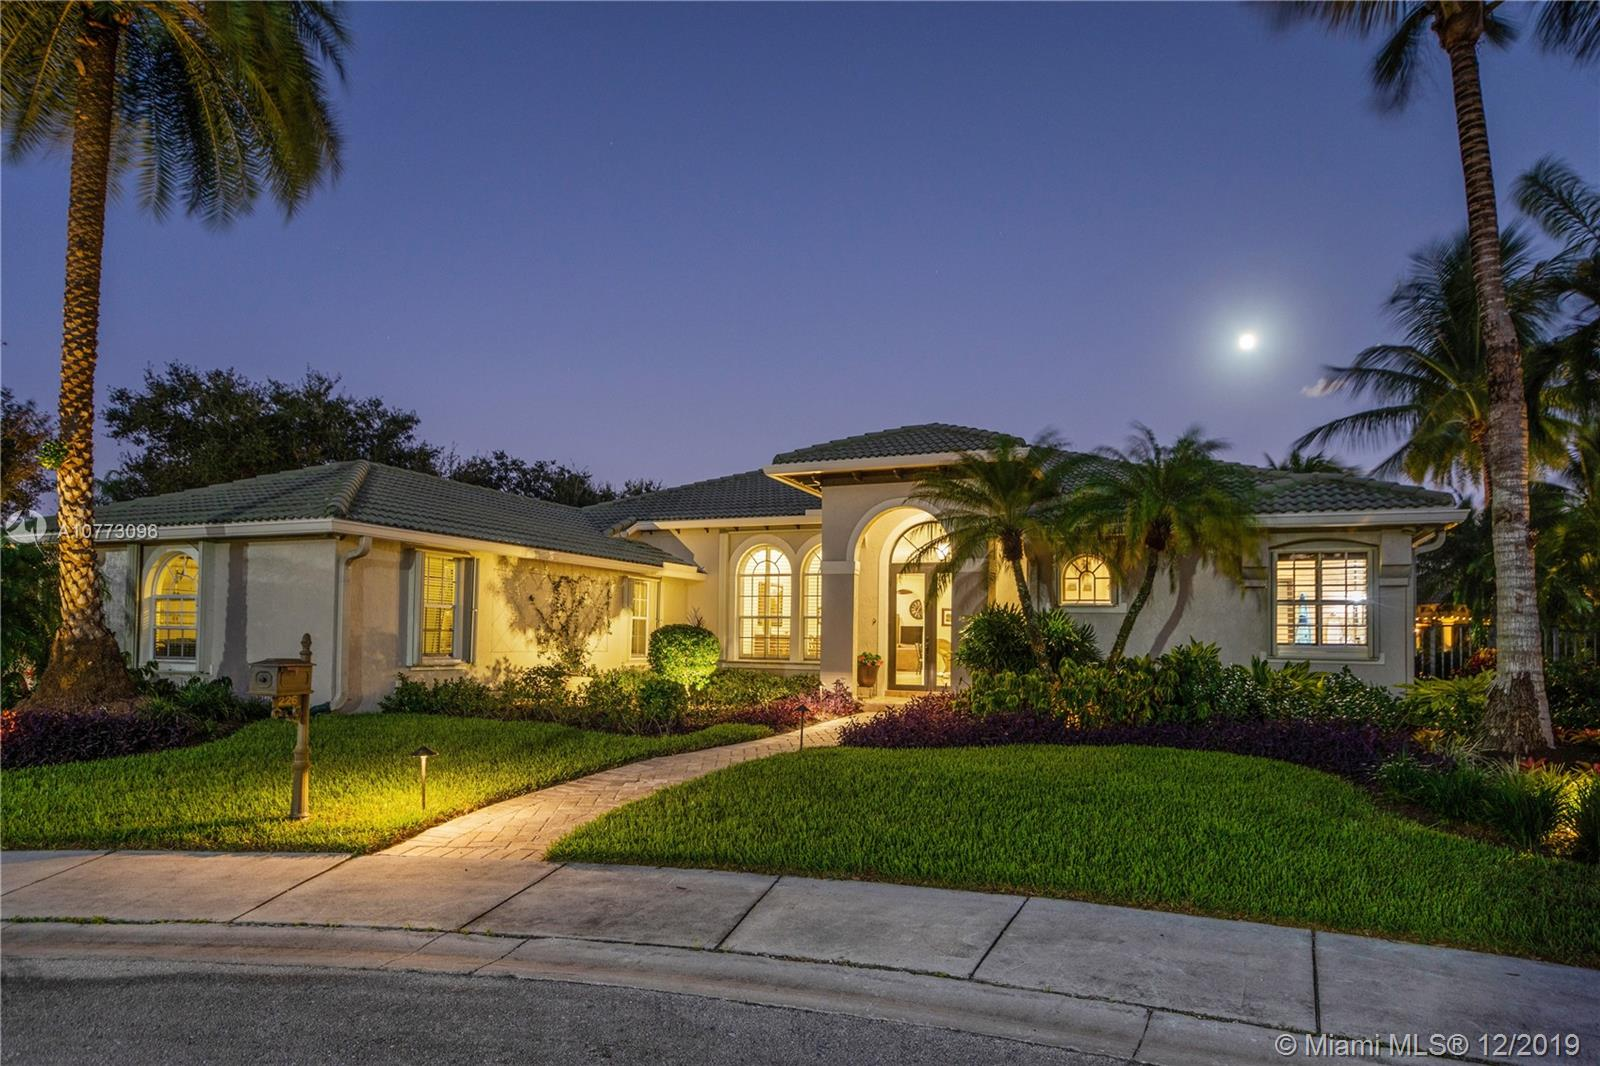 SPECTACULAR CUSTOM-BUILT HOME IN THE PRESTIGIOUS AND DESIRABLE THE LANDINGS. Perfectly located in a cul-de-sac on an OVERSIZE LOT, WITH ALMOST 19,000 SQ FT surrounded by a magnificent resort style outdoor area impeccably landscaped. A PRIVATE OASIS, PERFECT TO ENTERTAIN!This one story home with 5BED+OFFICE is in IMMACULATE CONDITION, with marble/wood floors throughout and high-end finishes. IMPECCABLY RENOVATED: new fully equipped chef's kitchen with all brand new top of the line appliances, new ACs, newly renovated pool and spa with new heaters, new plantation shutters, among other upgrades. Impact/accordion hurricane protections and new garage impact doors. Owner being transferred by the company. Access to best A-rated public schools. COME LIVE AN AMAZING LIFESTYLE IN THIS DREAM HOME!